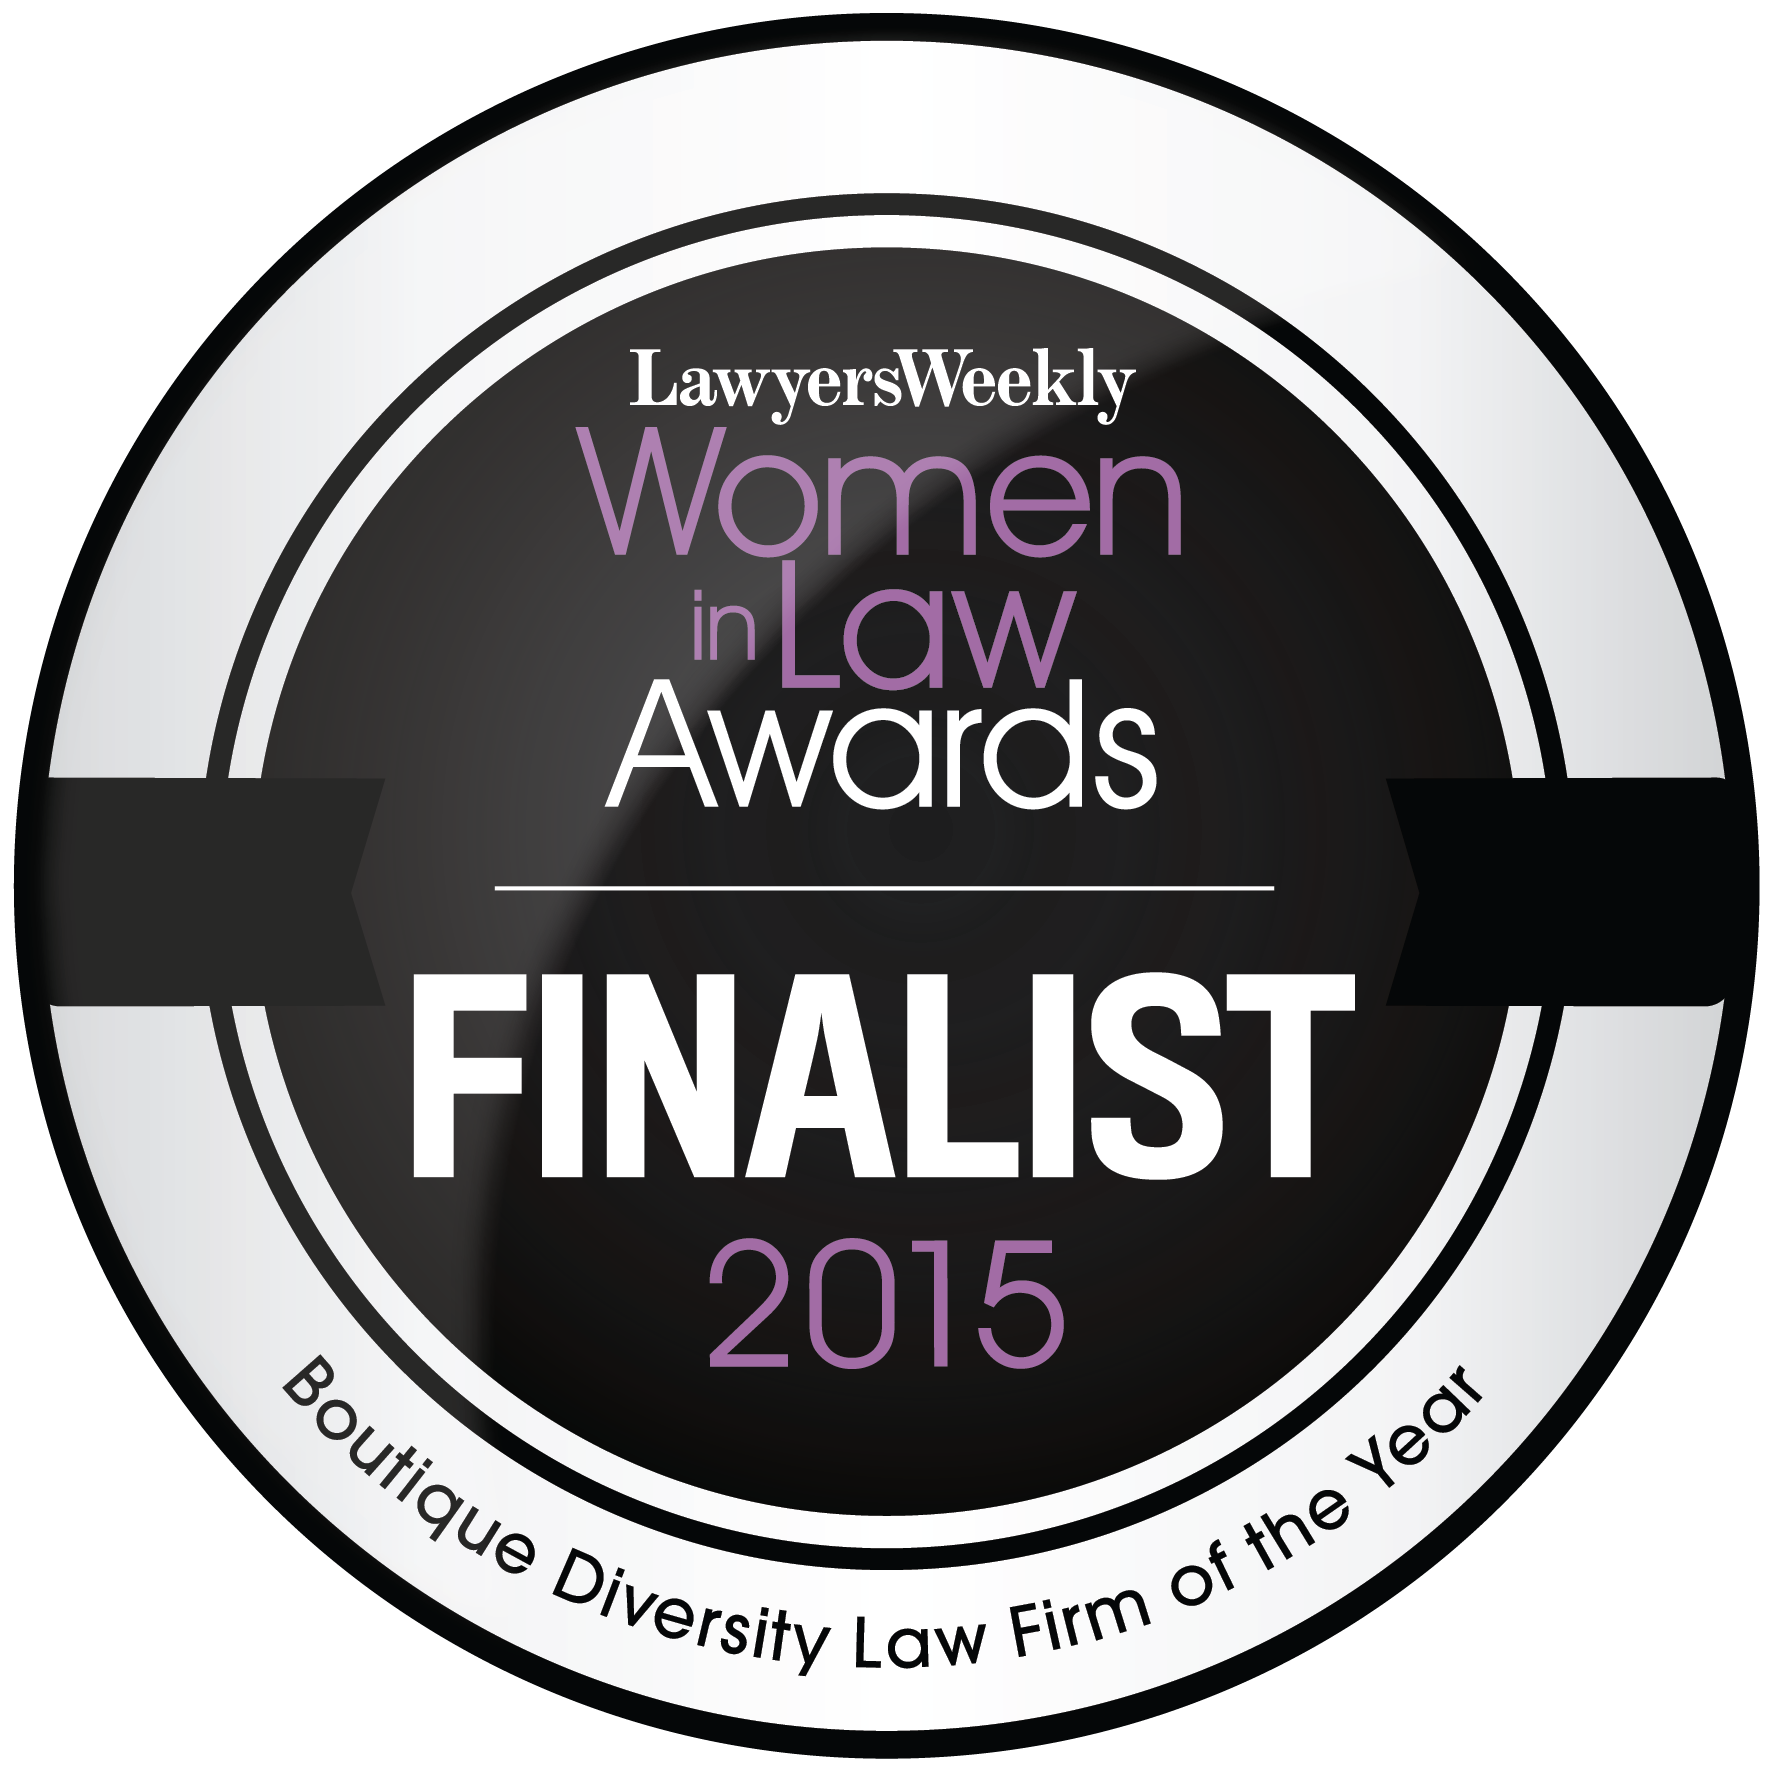 2015 Women in Law Boutique Diversity Law Firm of the Year Finalist